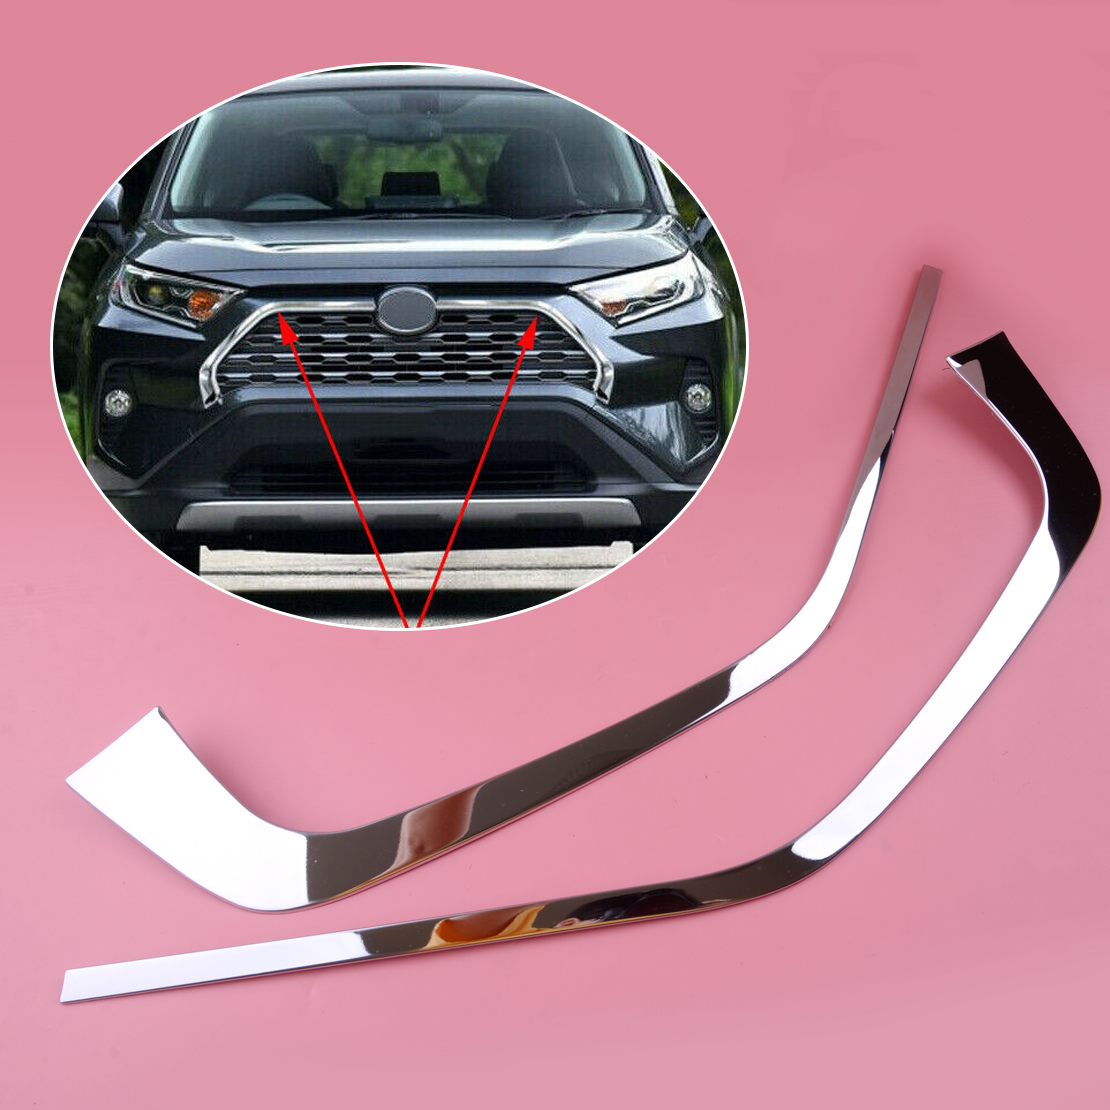 For Toyota Rav4 2019 ABS Chrome Front Grill Grille Decorative Cover Trim Strips